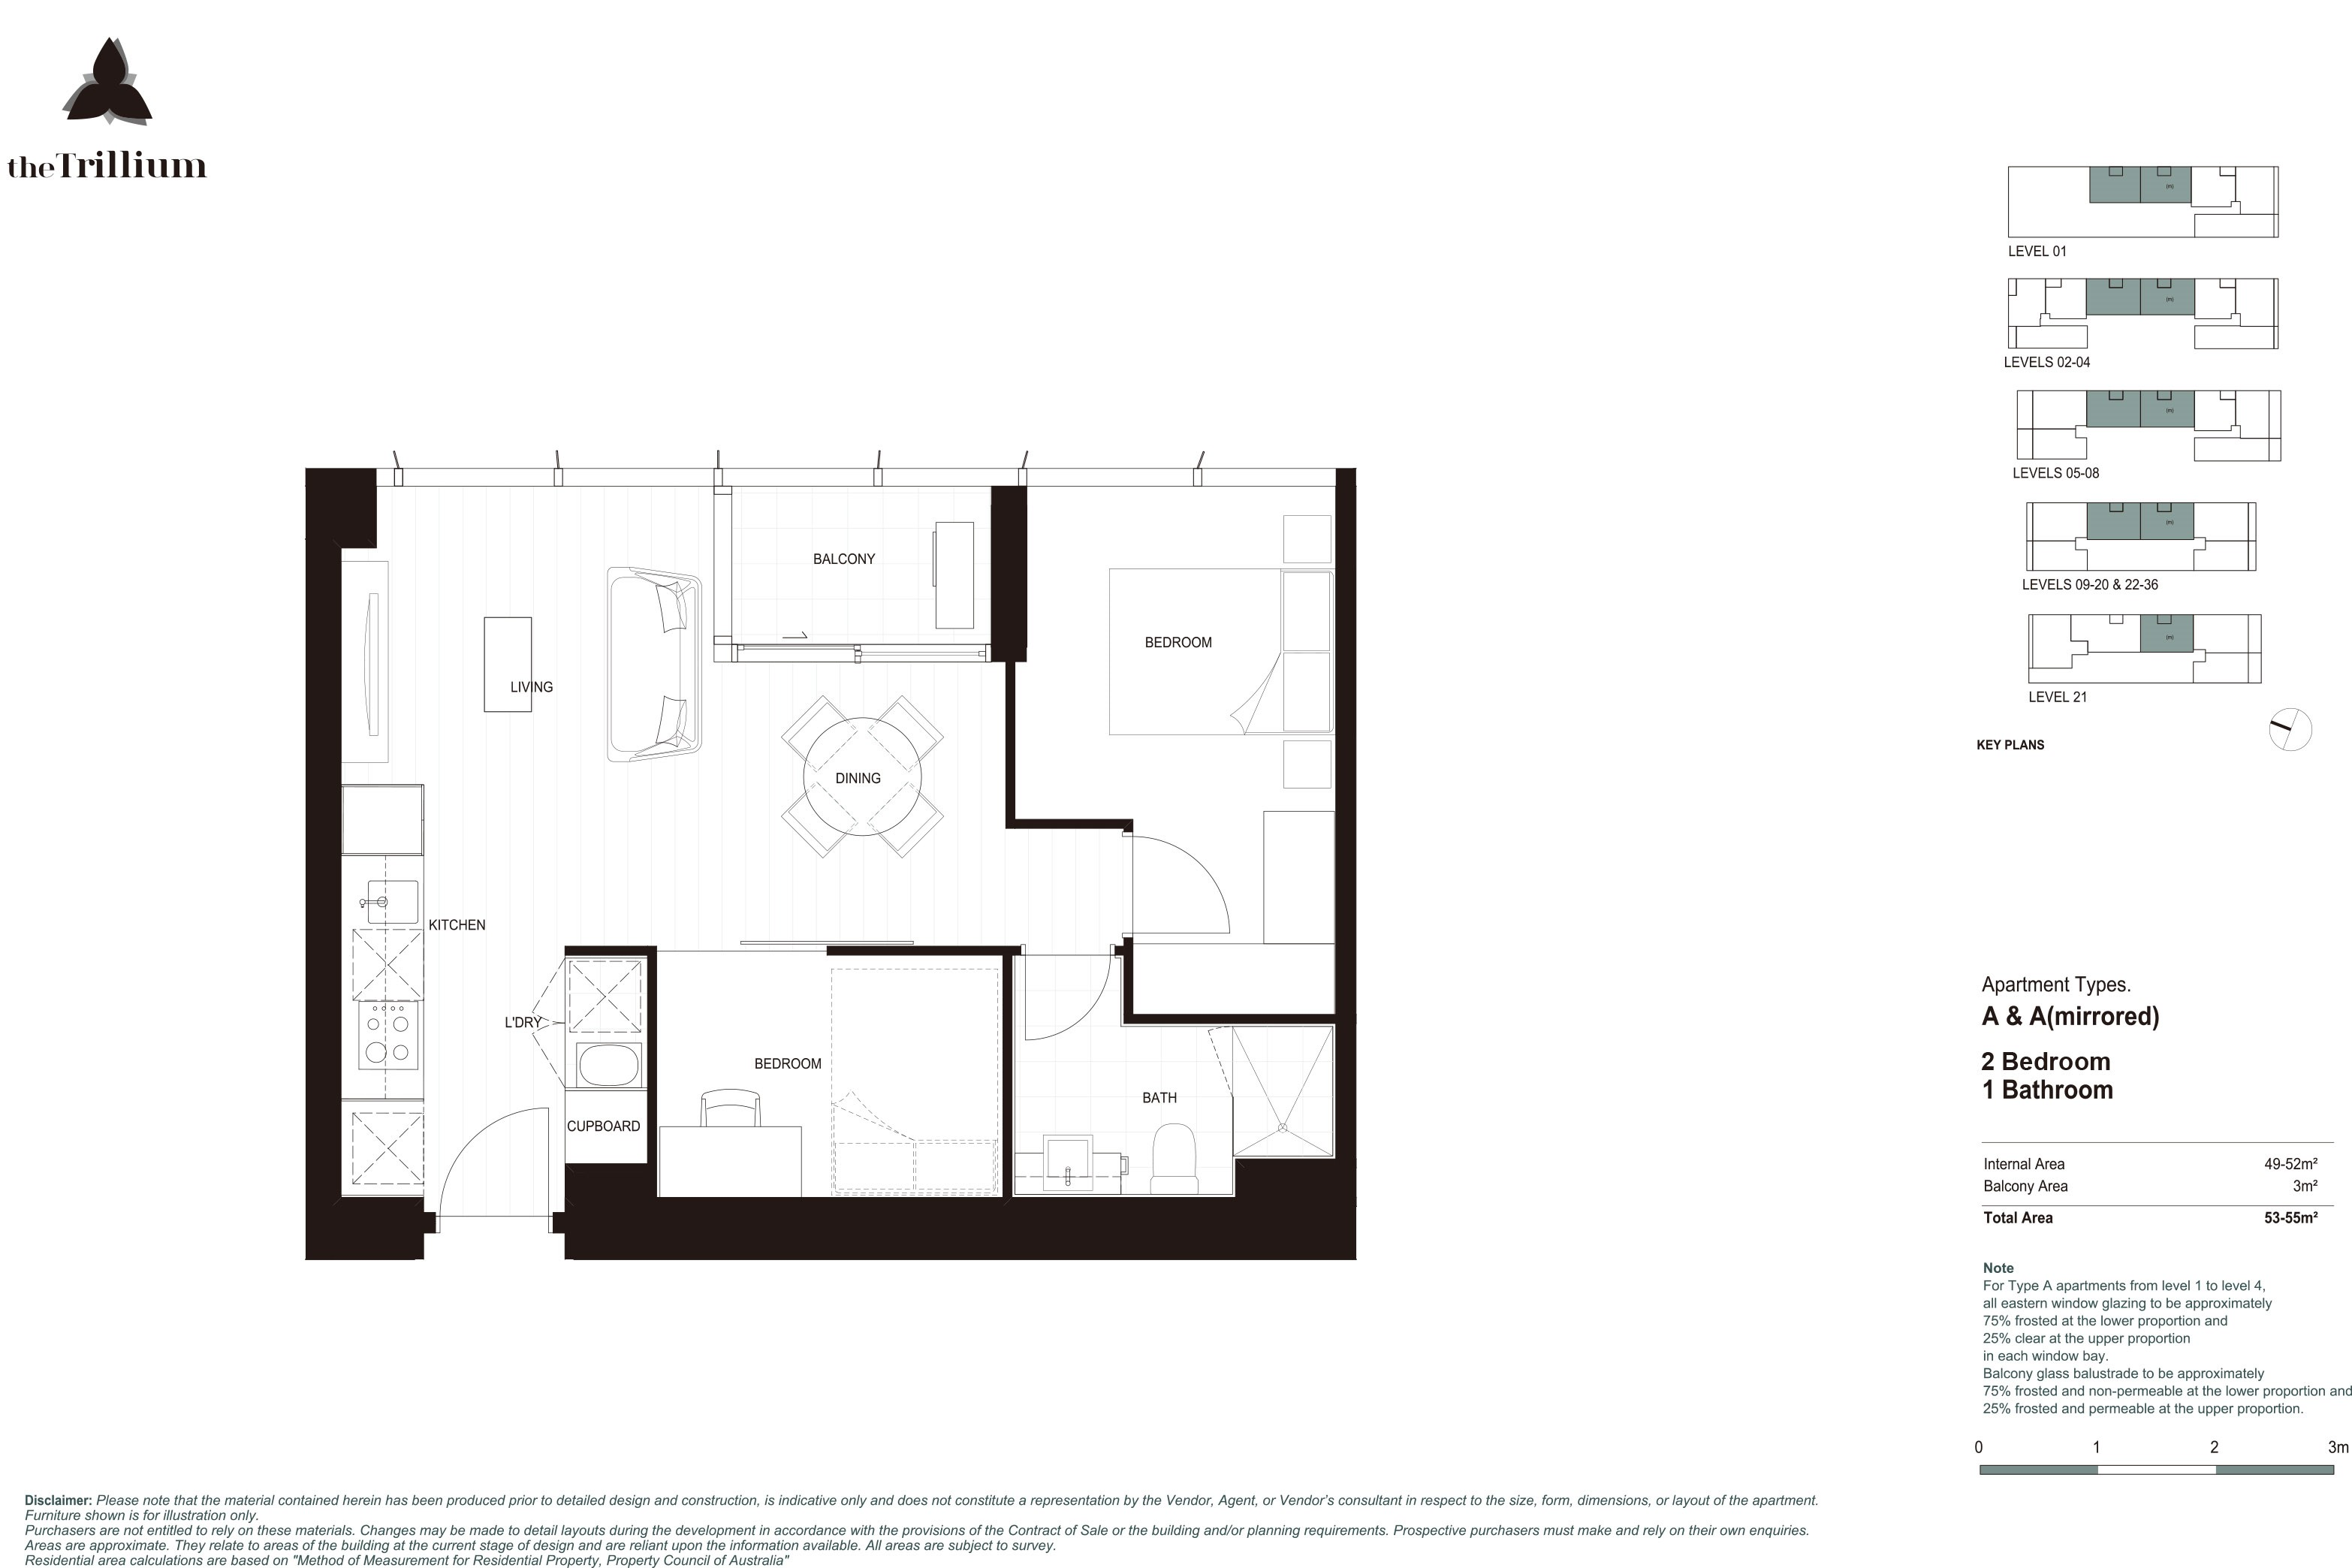 As Brand New 2 Bedroom Trillium Apartment for Sale